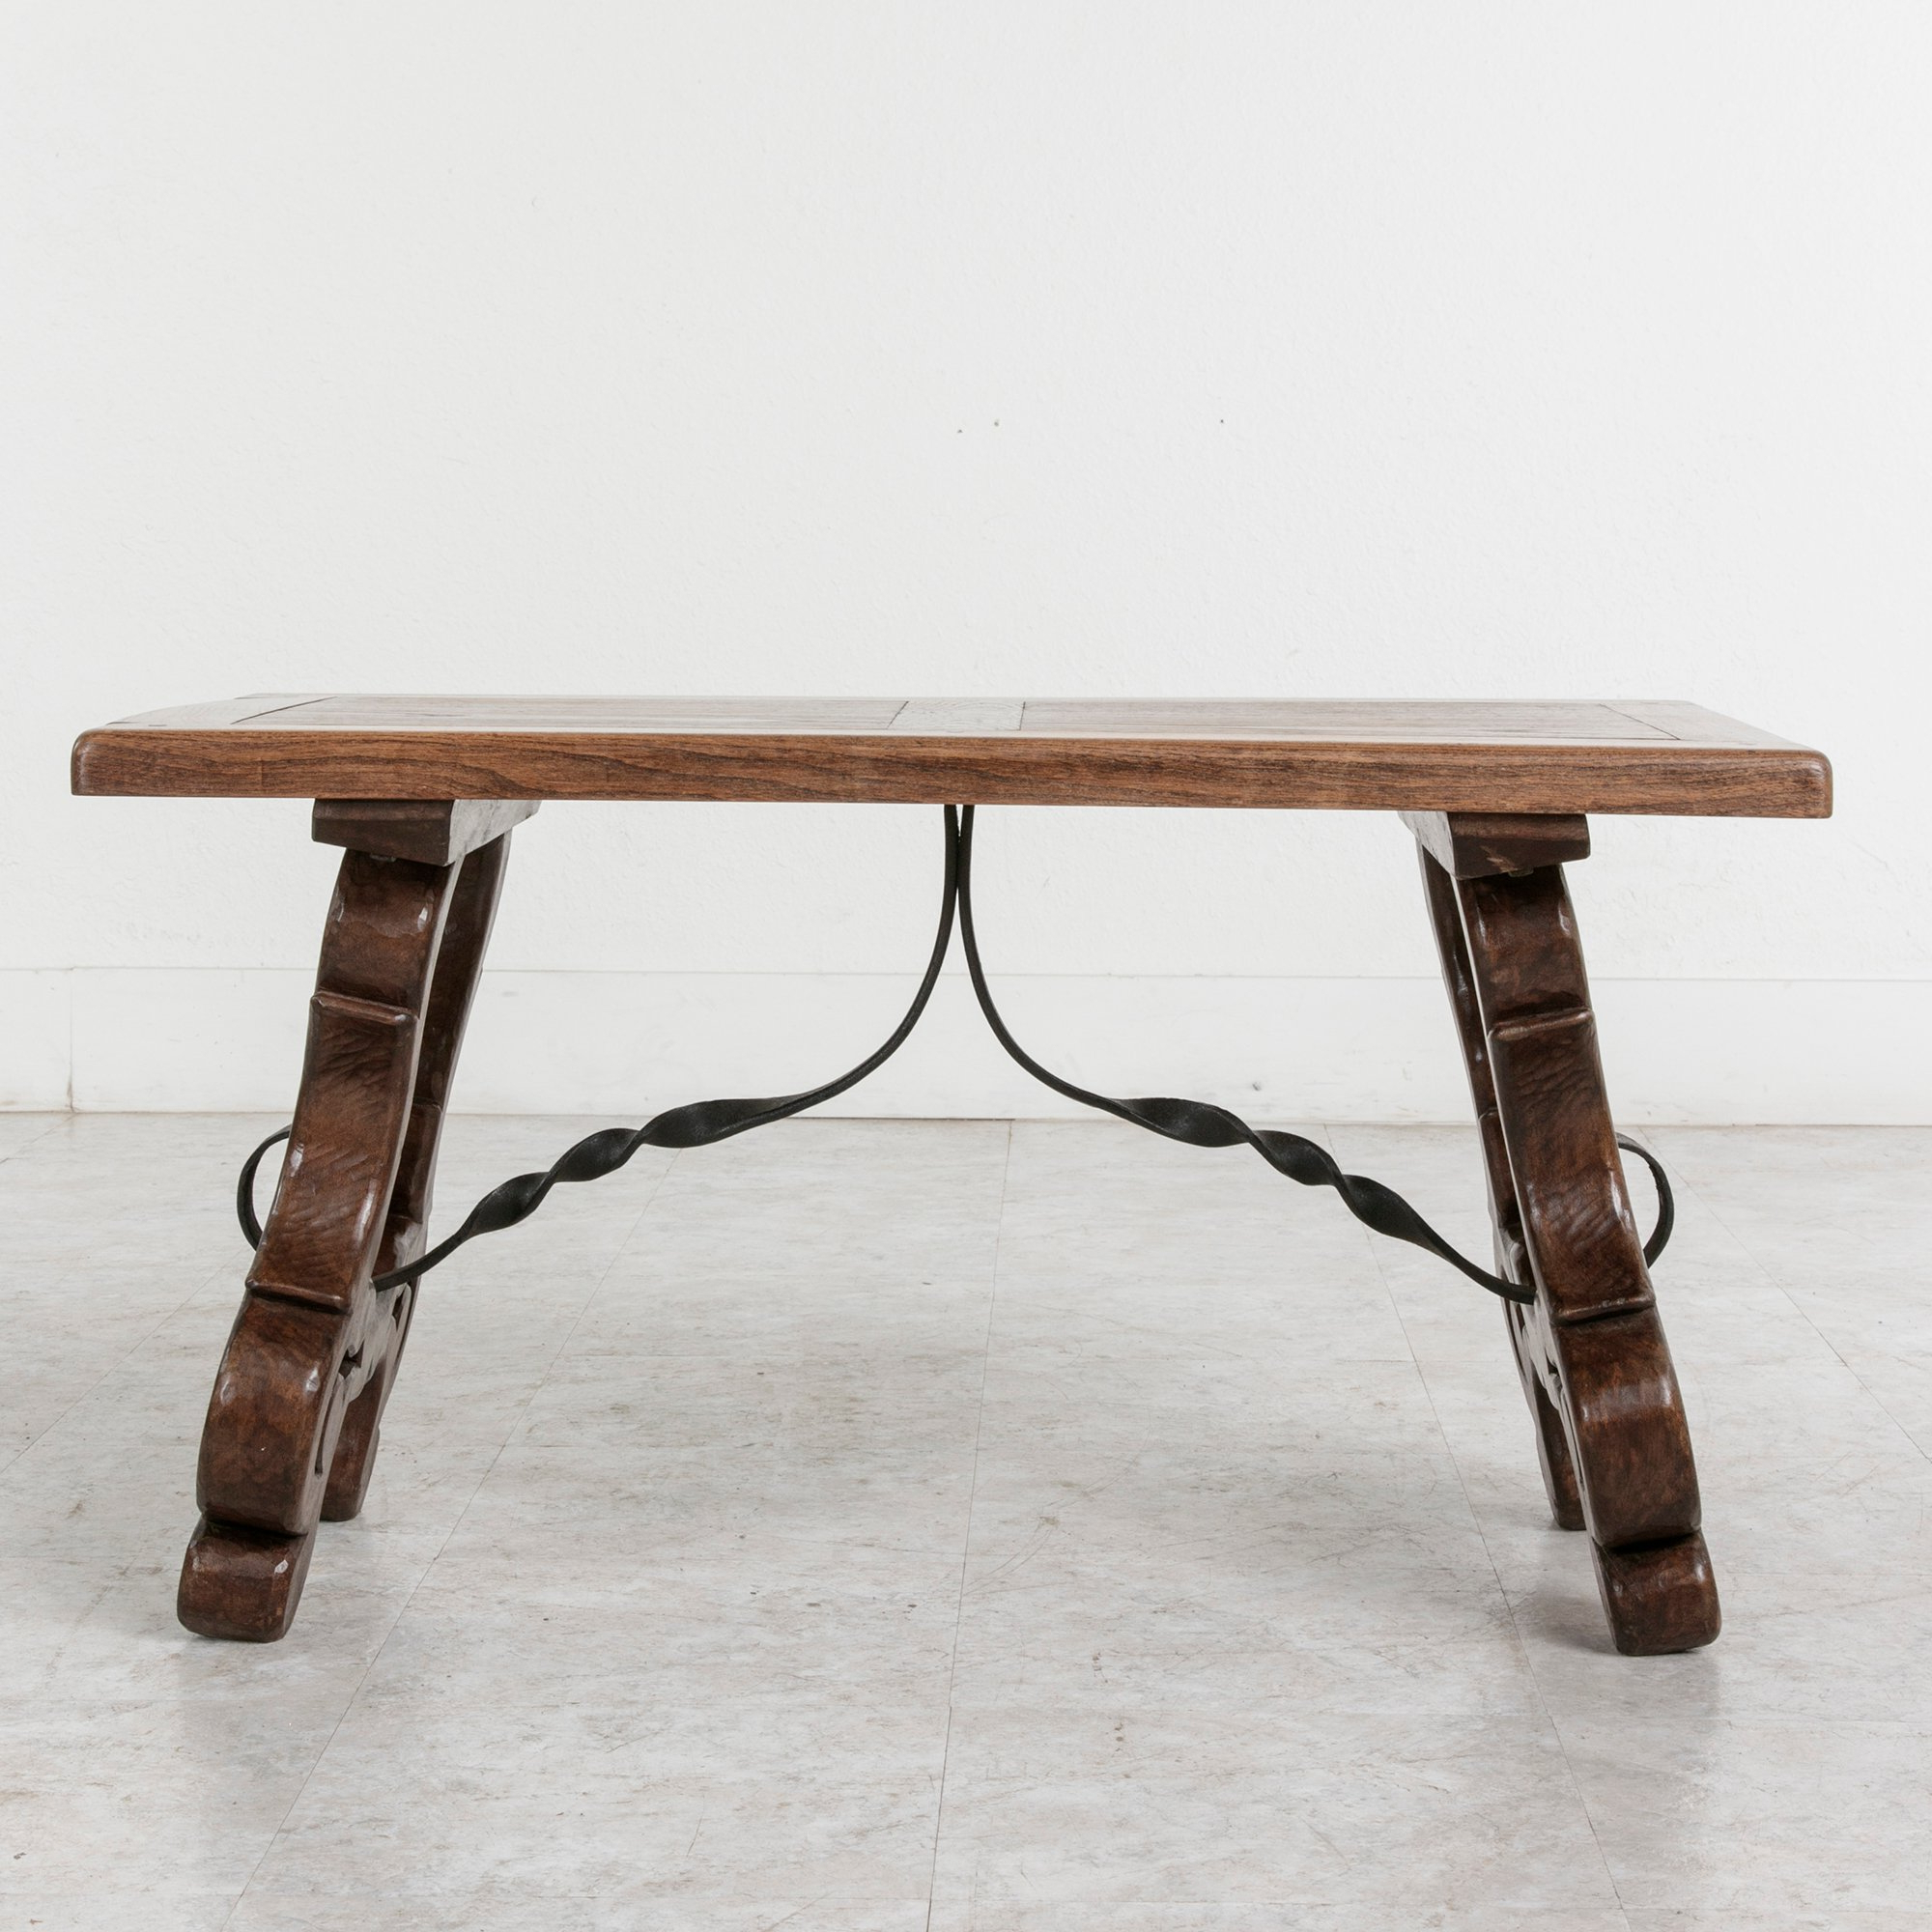 Famous Spanish Coffee Tables Intended For Early 20Th Century Spanish Style Oak Coffee Table Or Bench With Iron (Gallery 3 of 20)